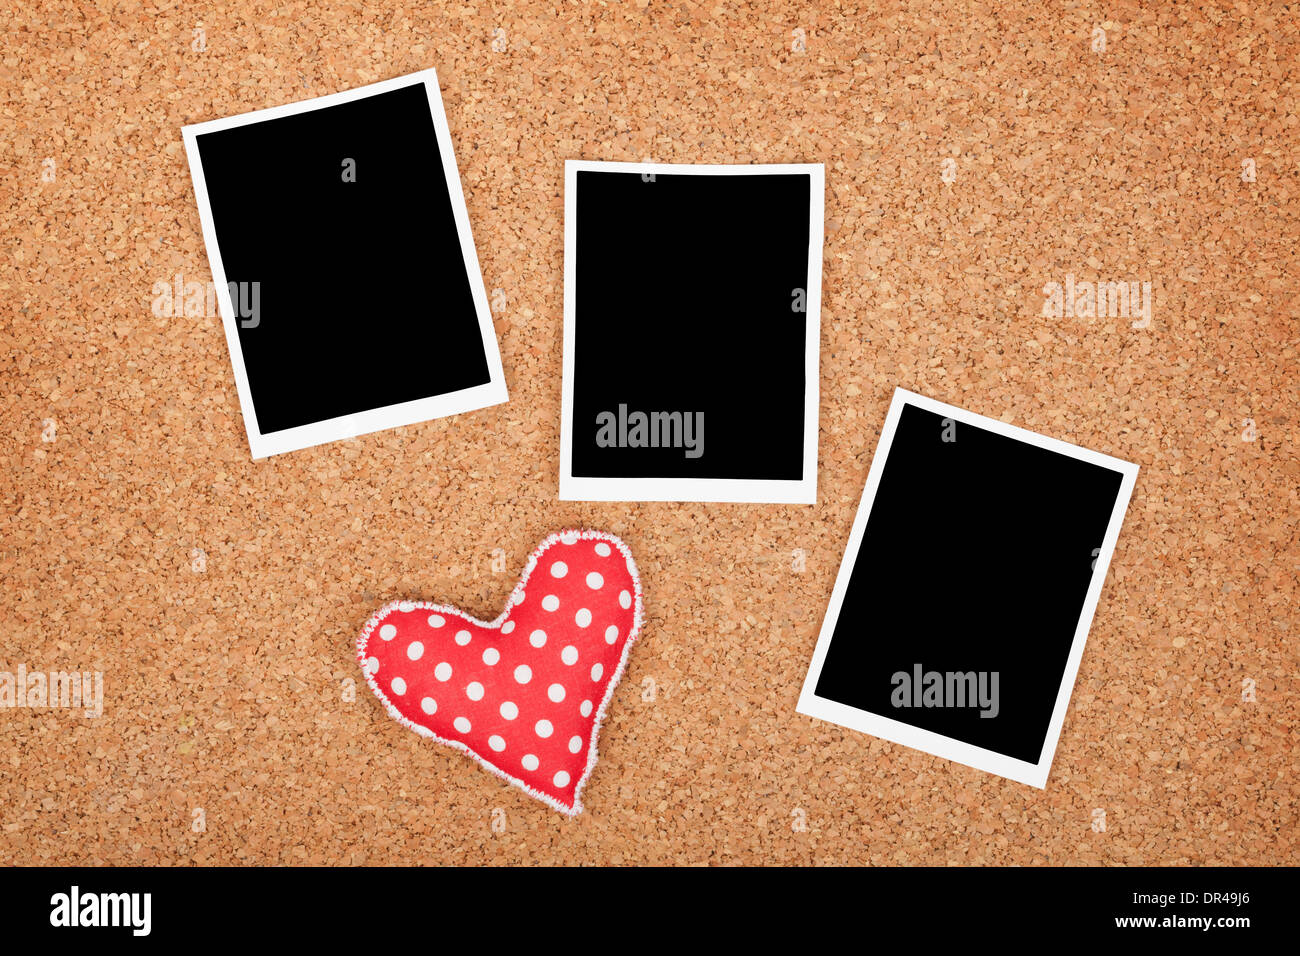 Polaroid photo frames on cork texture background with handmaded heart - Stock Image